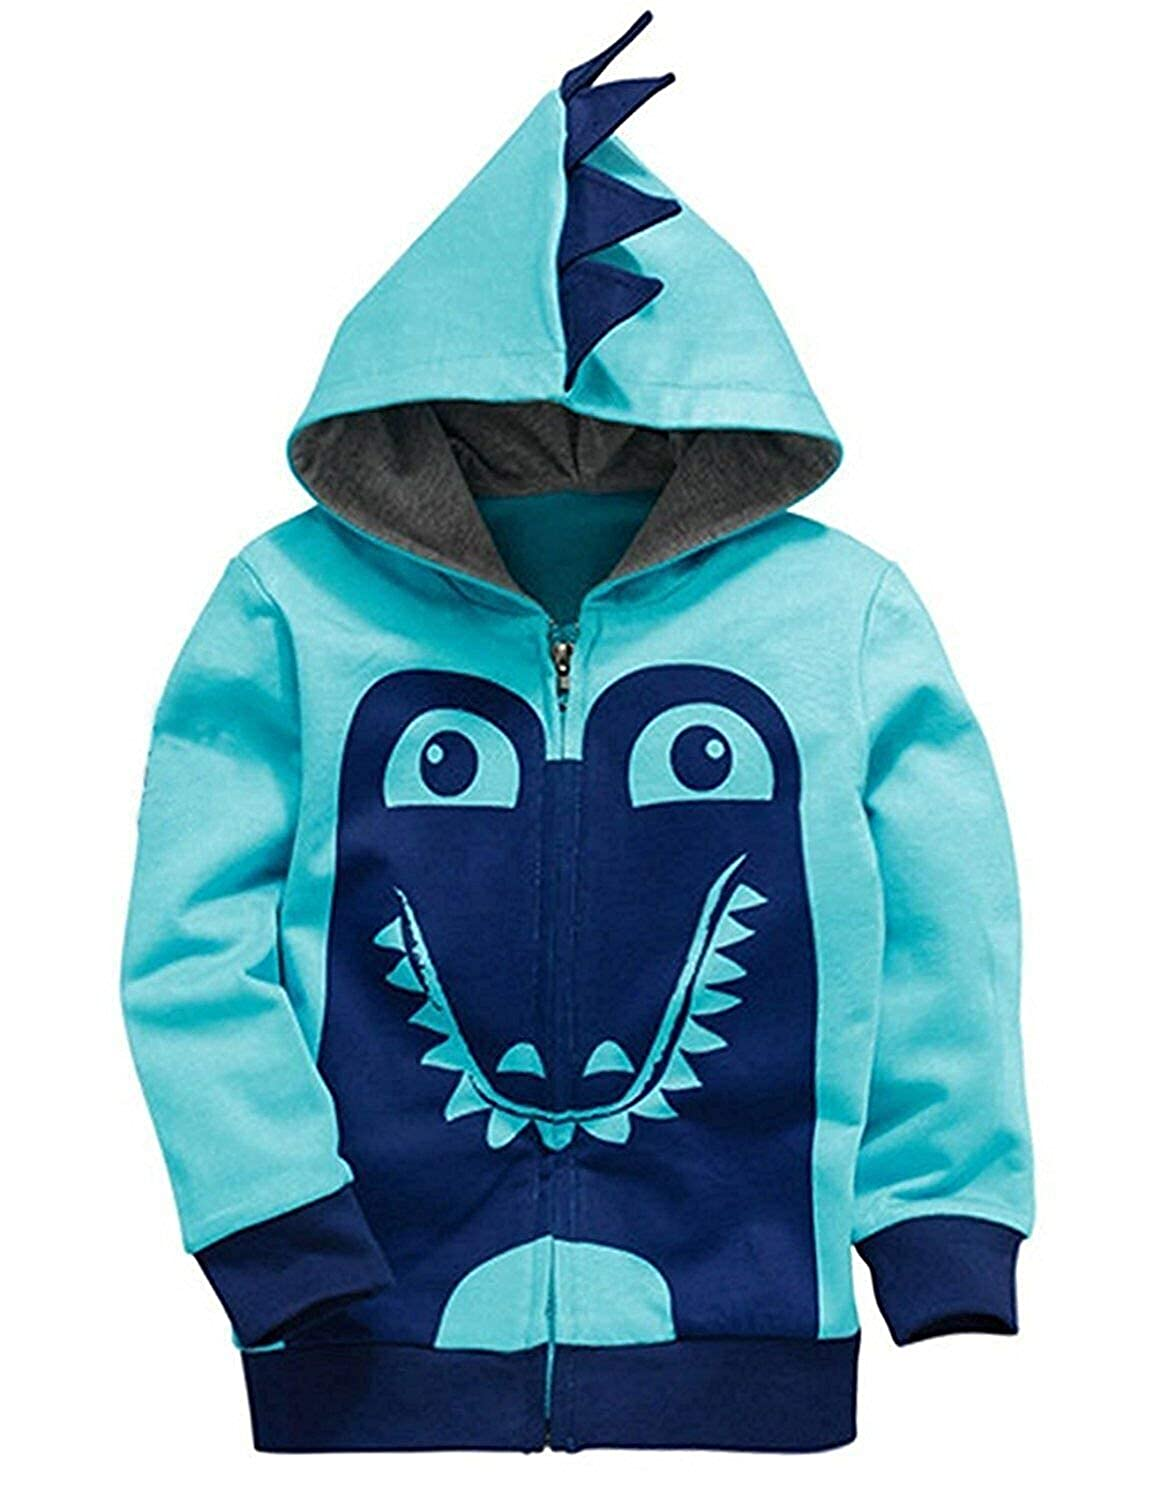 Qmislg Toddler Jackets Boys Cartoon Dinosaur Hoodie Long Sleeve Zipper Hooded Sport Sweatshirt for Kids